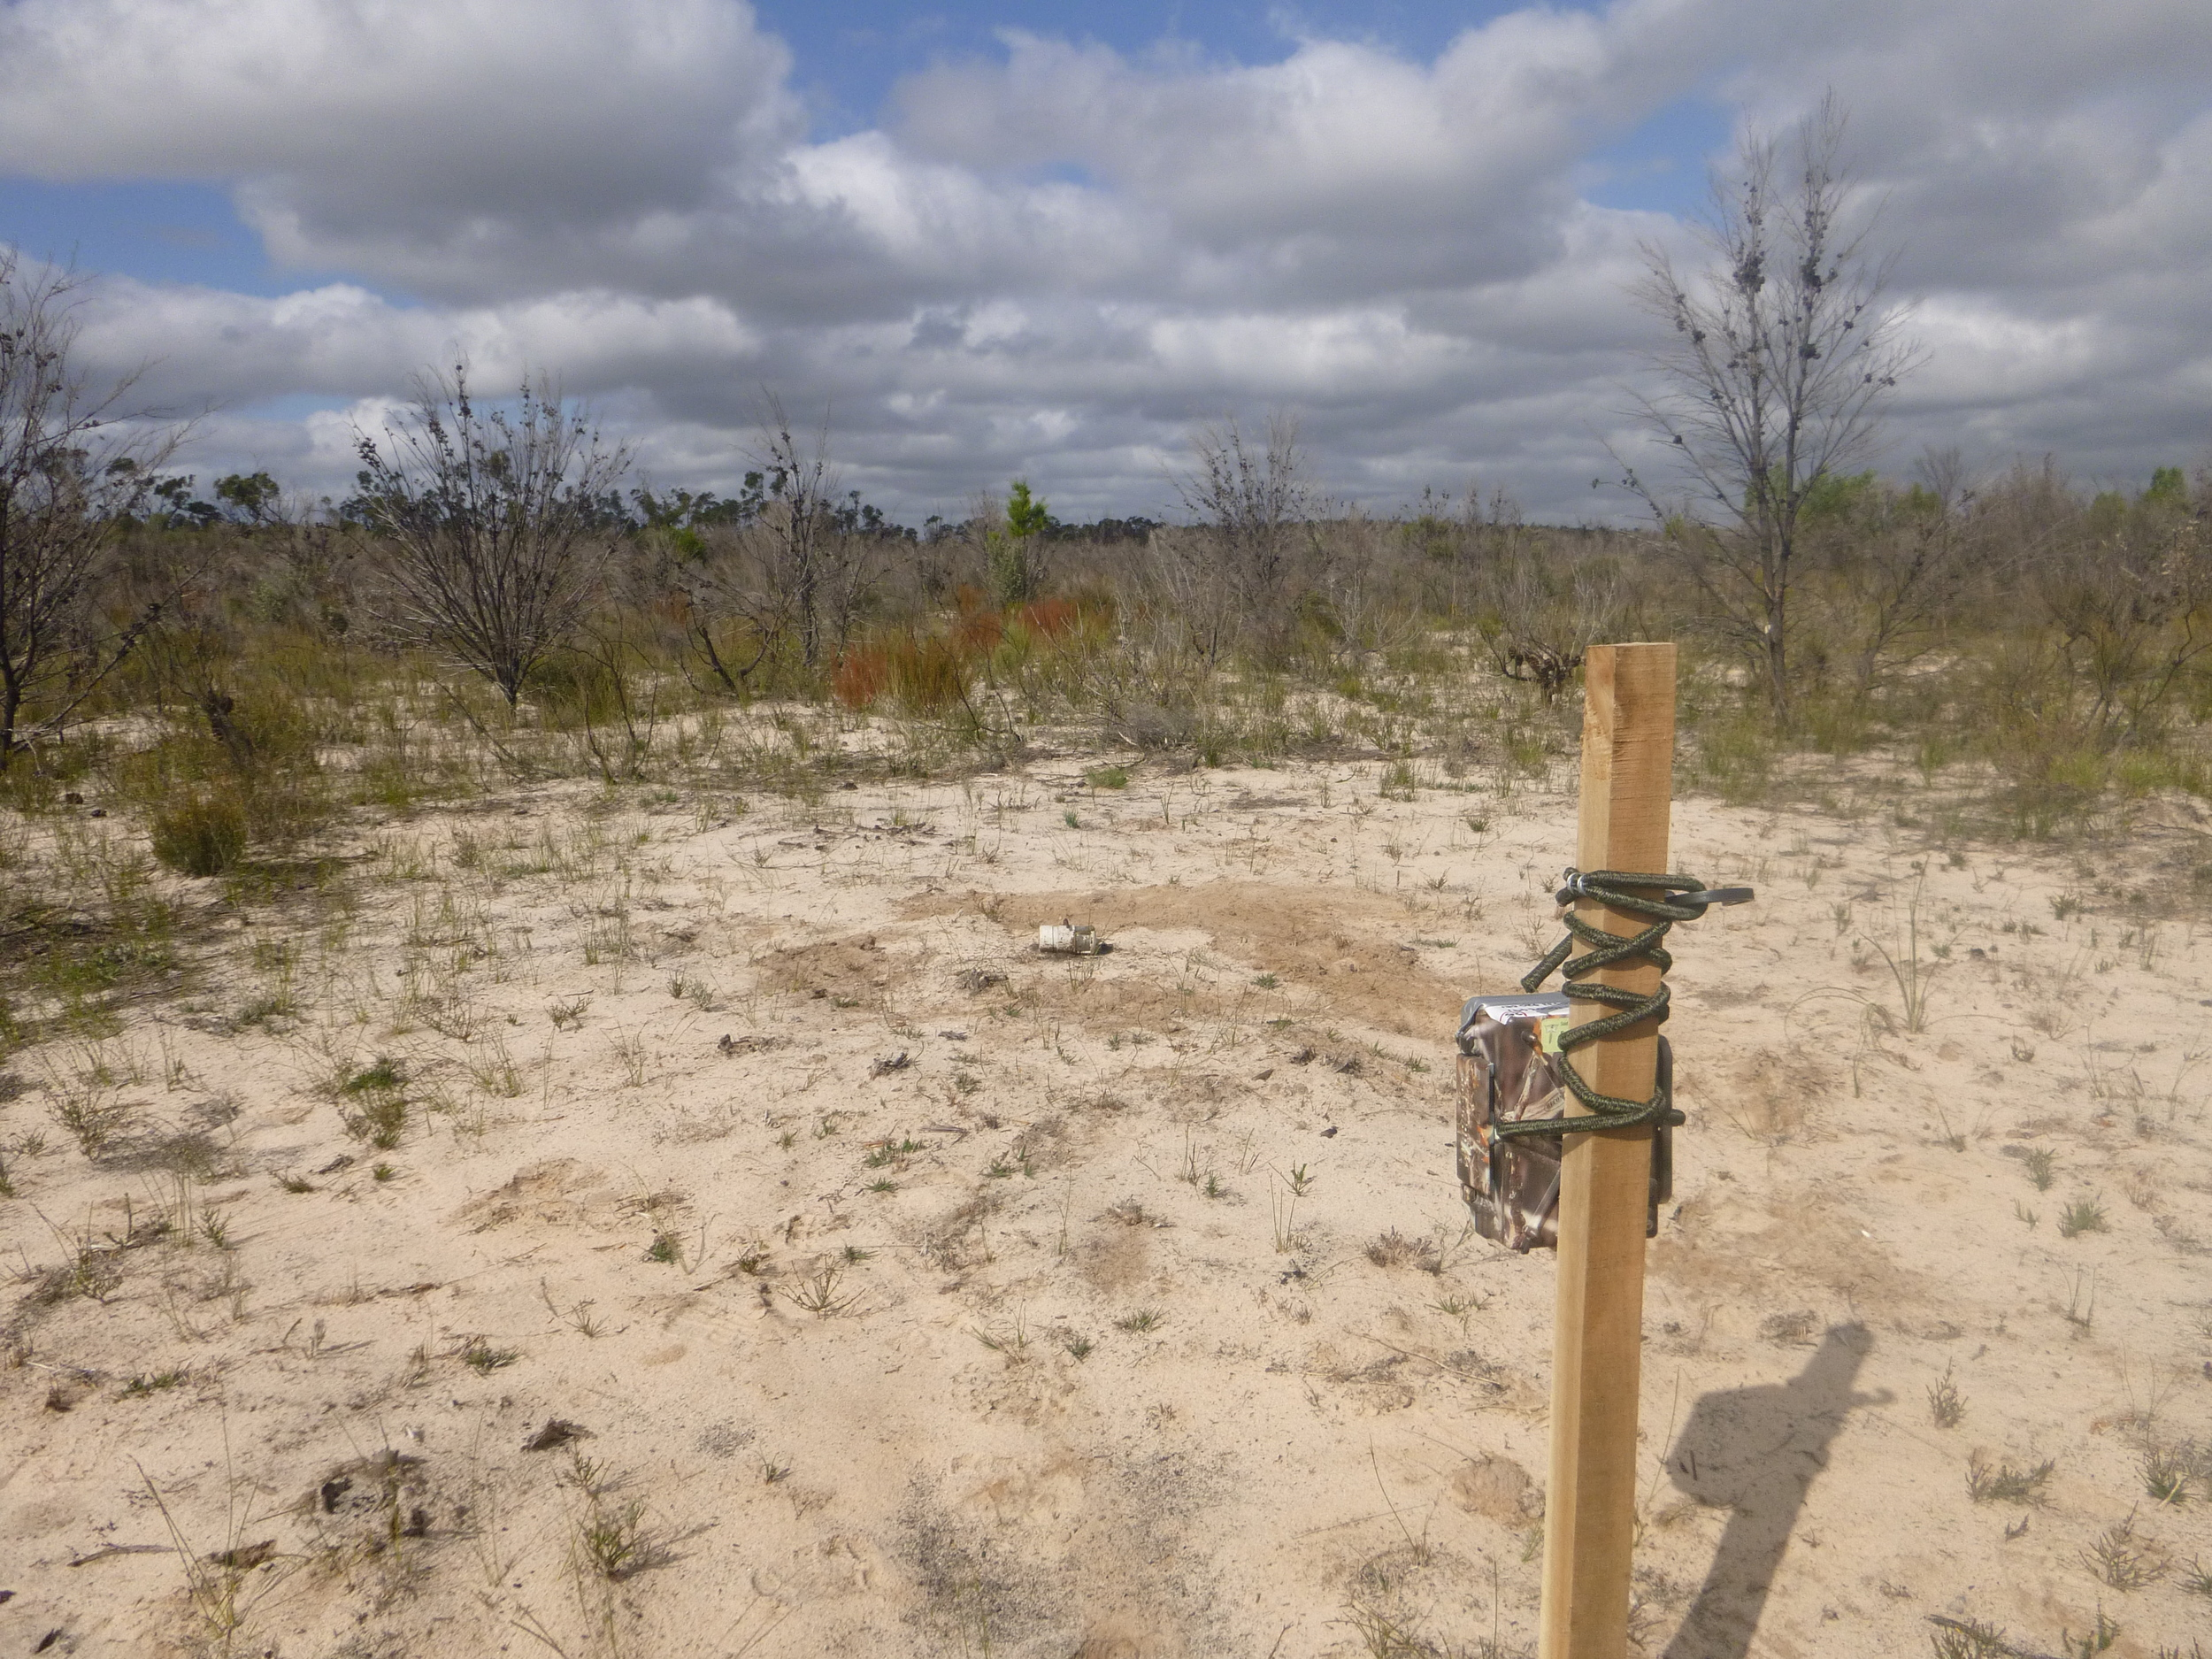 The outward facing predator camera in some early successional heathland. Photo: William Geary